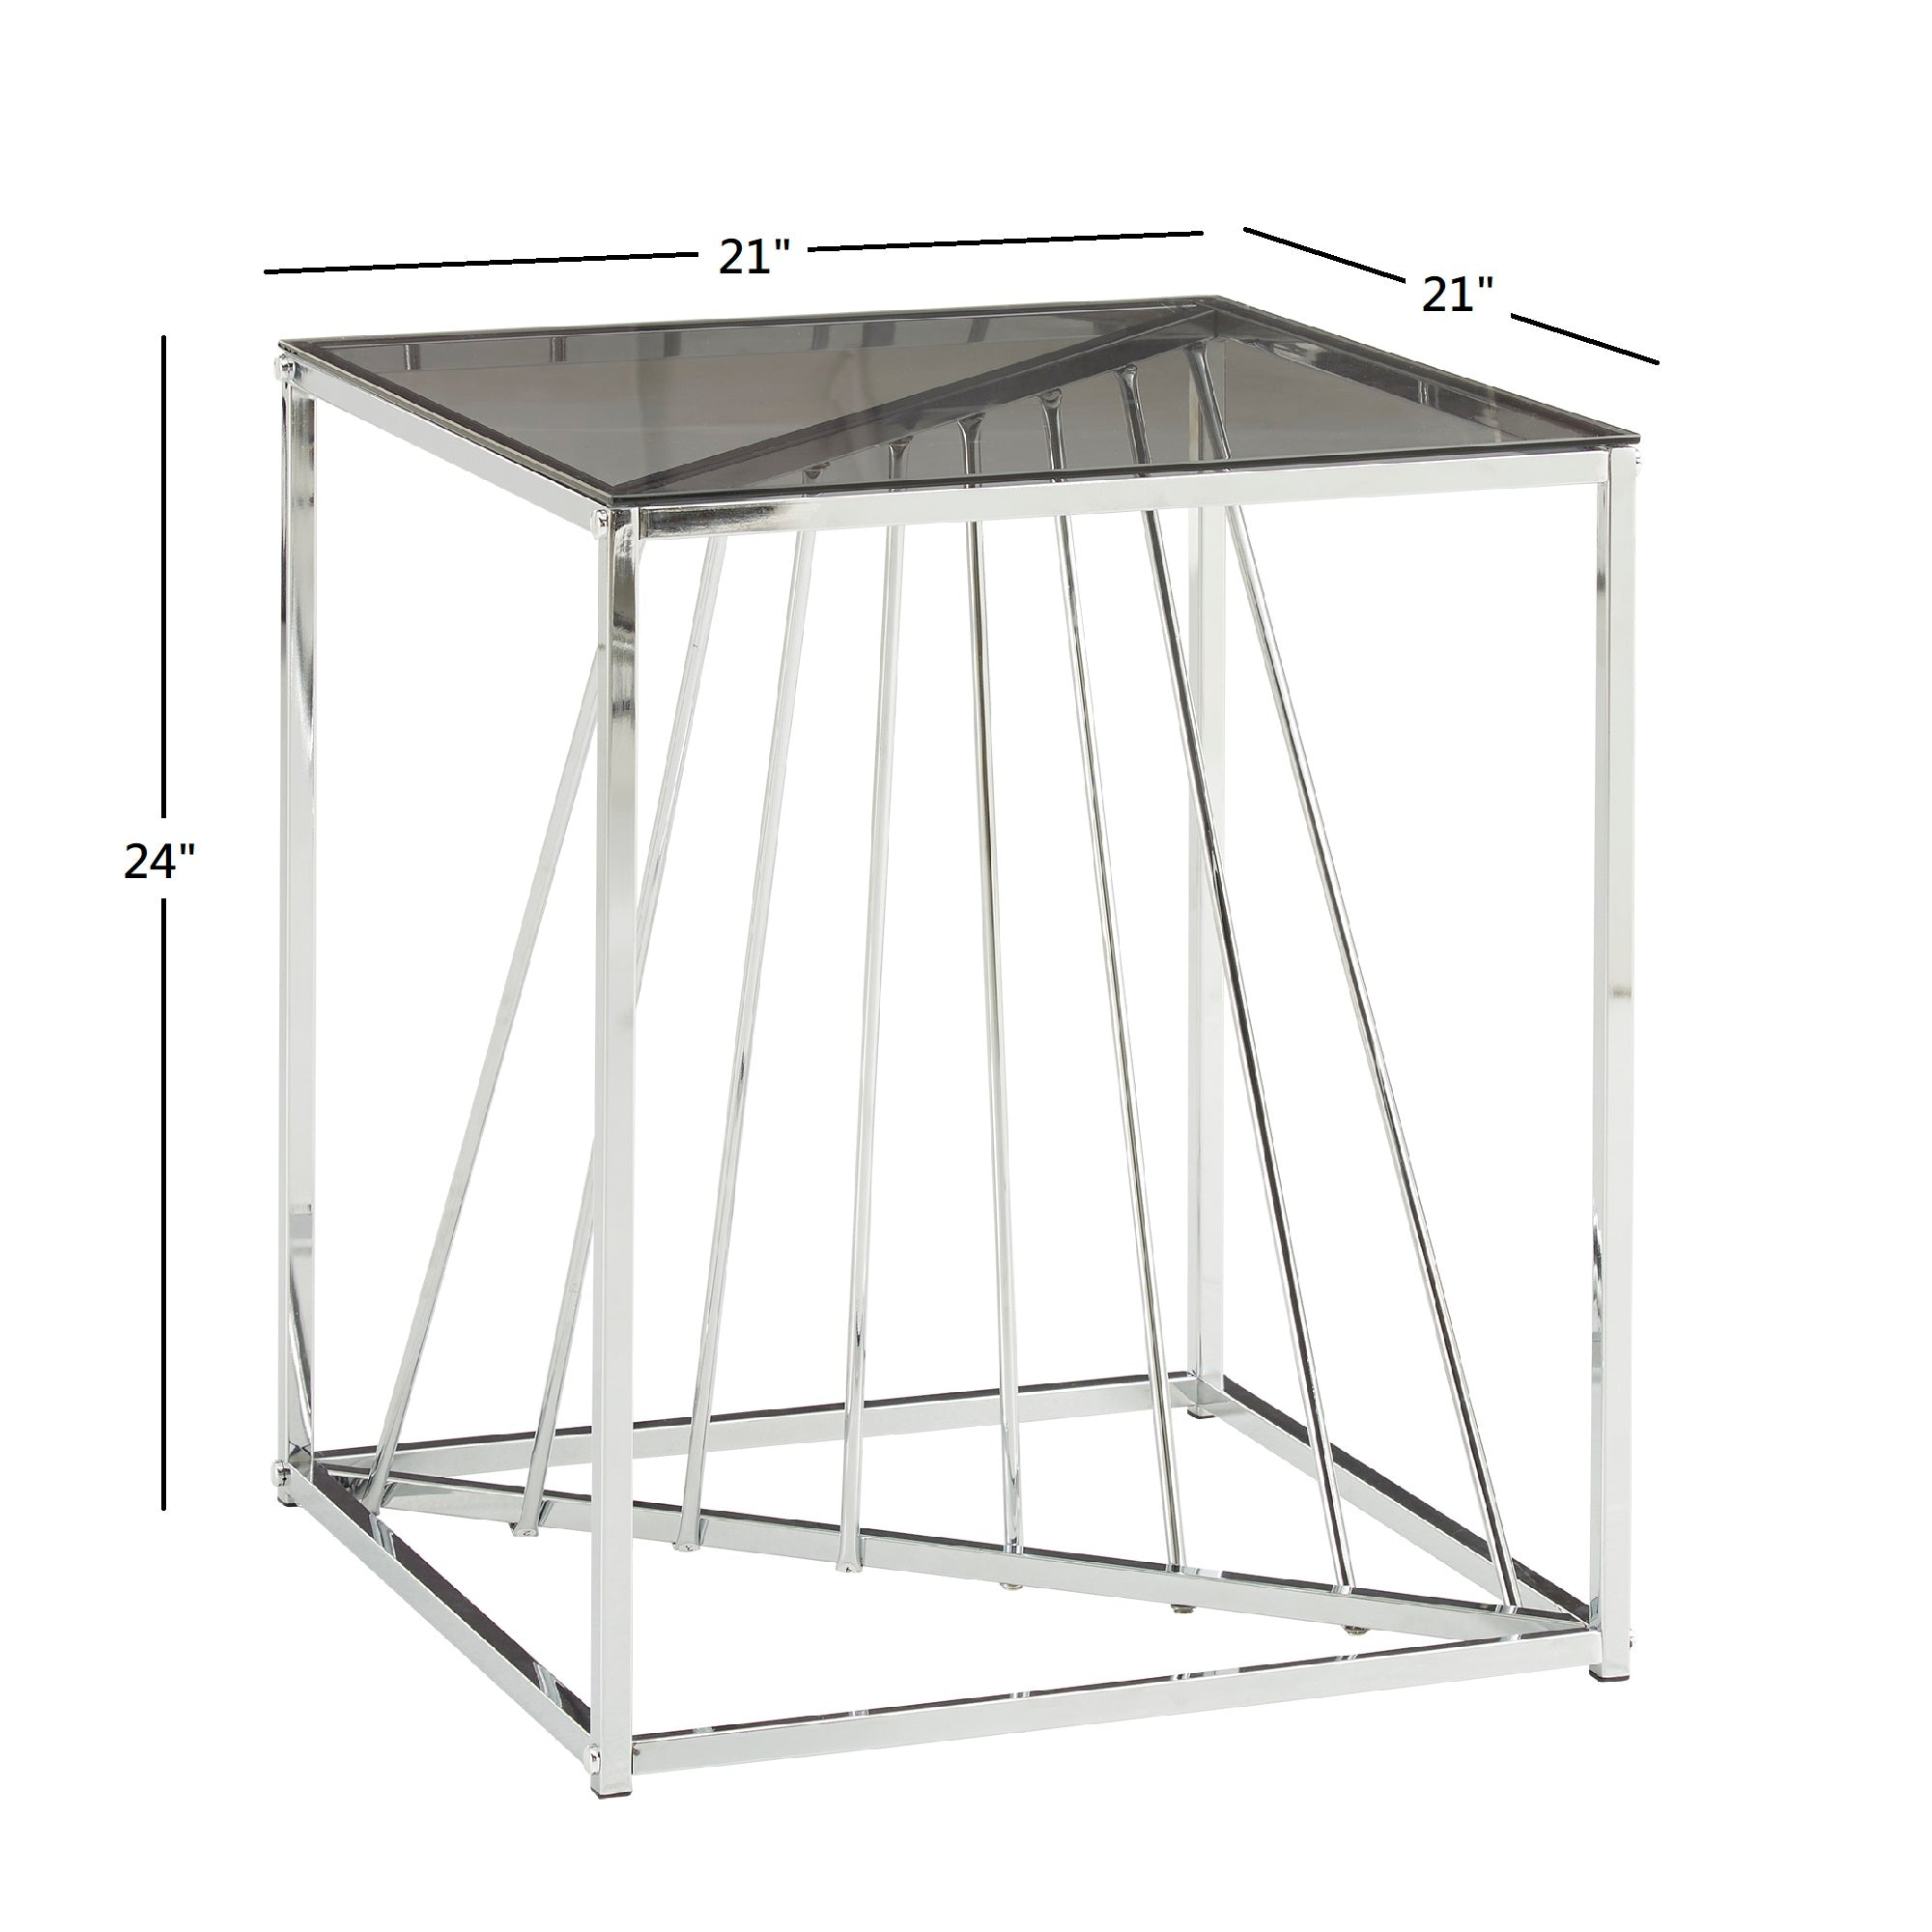 Square Metal and Glass Top End Table - Chrome Finish with Smoked Glass